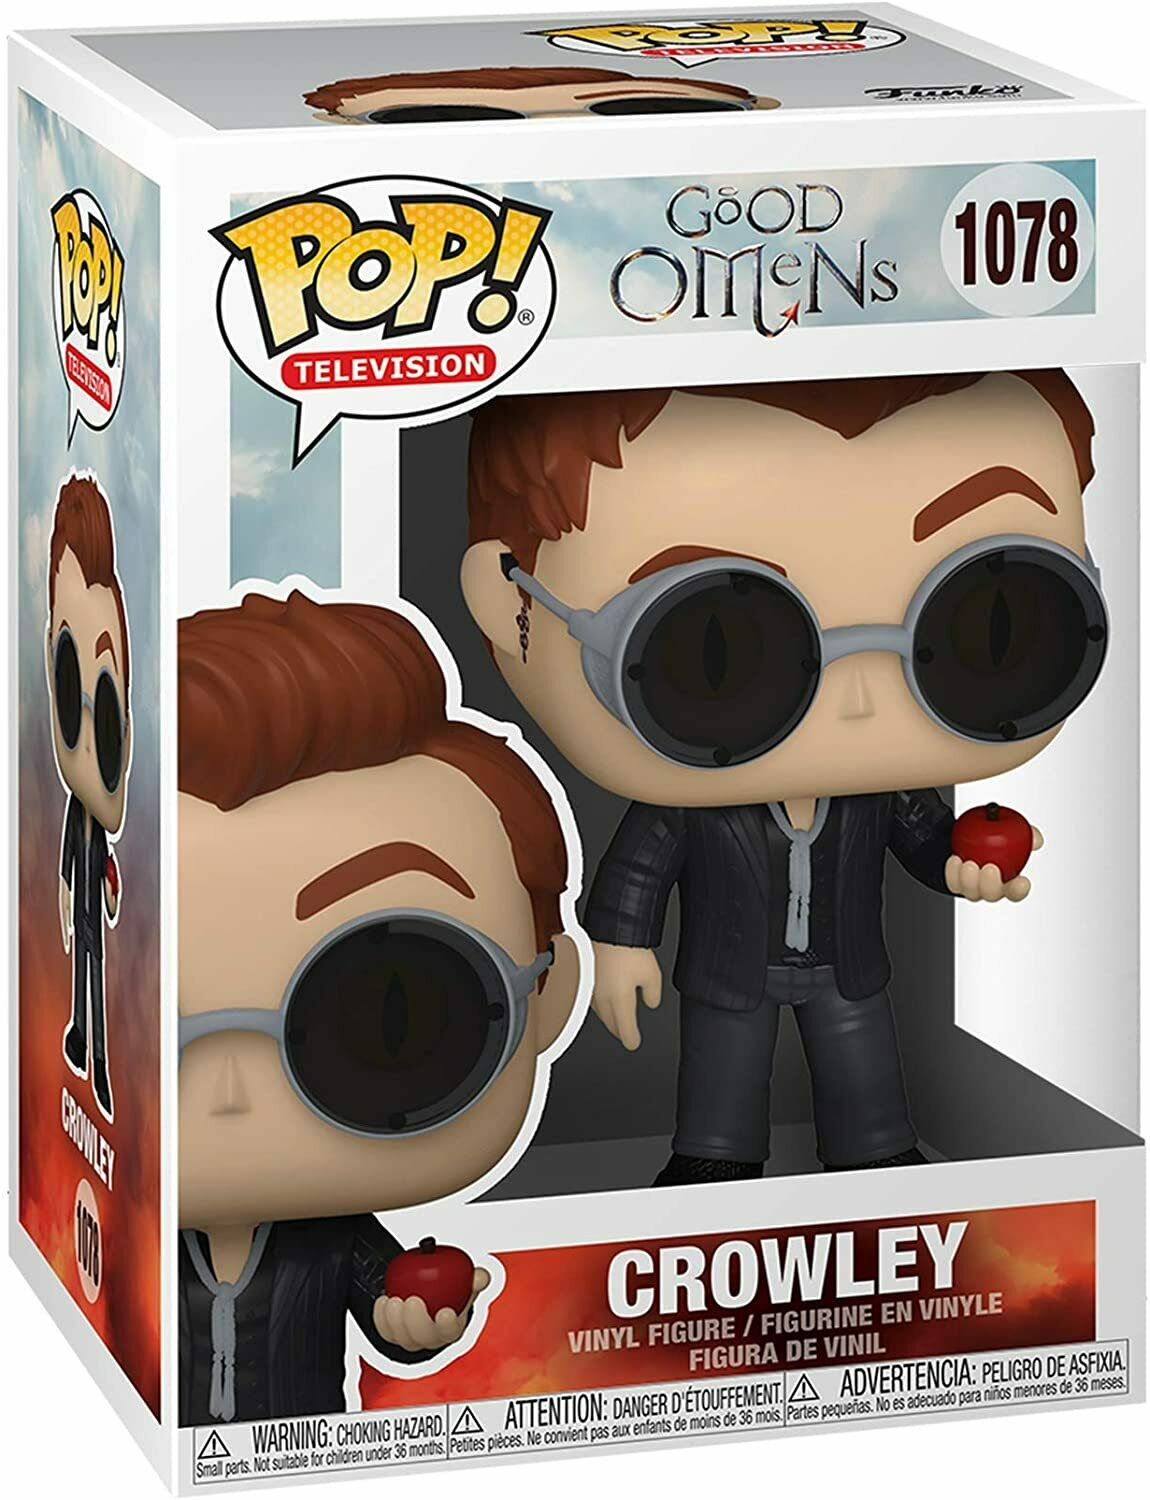 POP! Television: Good Omens - Crowley Vinyl Figure #1078